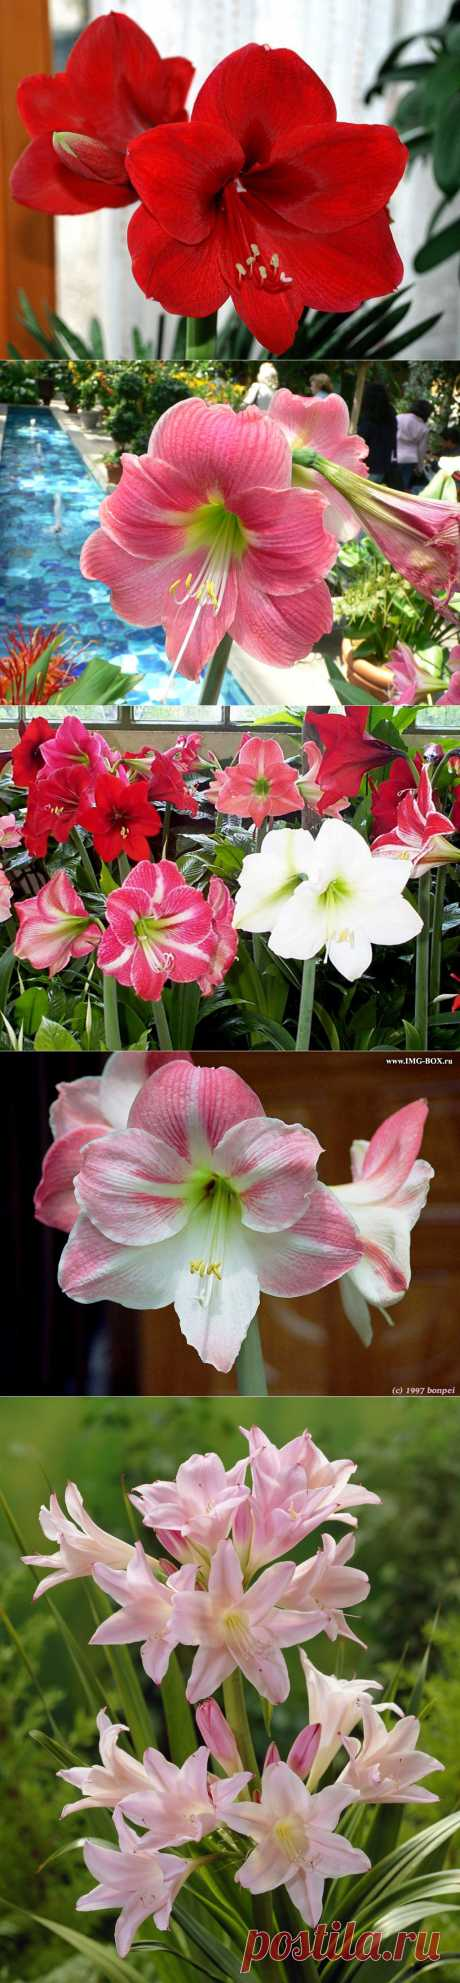 Hippeastrum. Care of flowers Hippeastrums, houseplant Hippeastrum, reproduction, watering, leaving. Flower Hippeastrum cultivation.